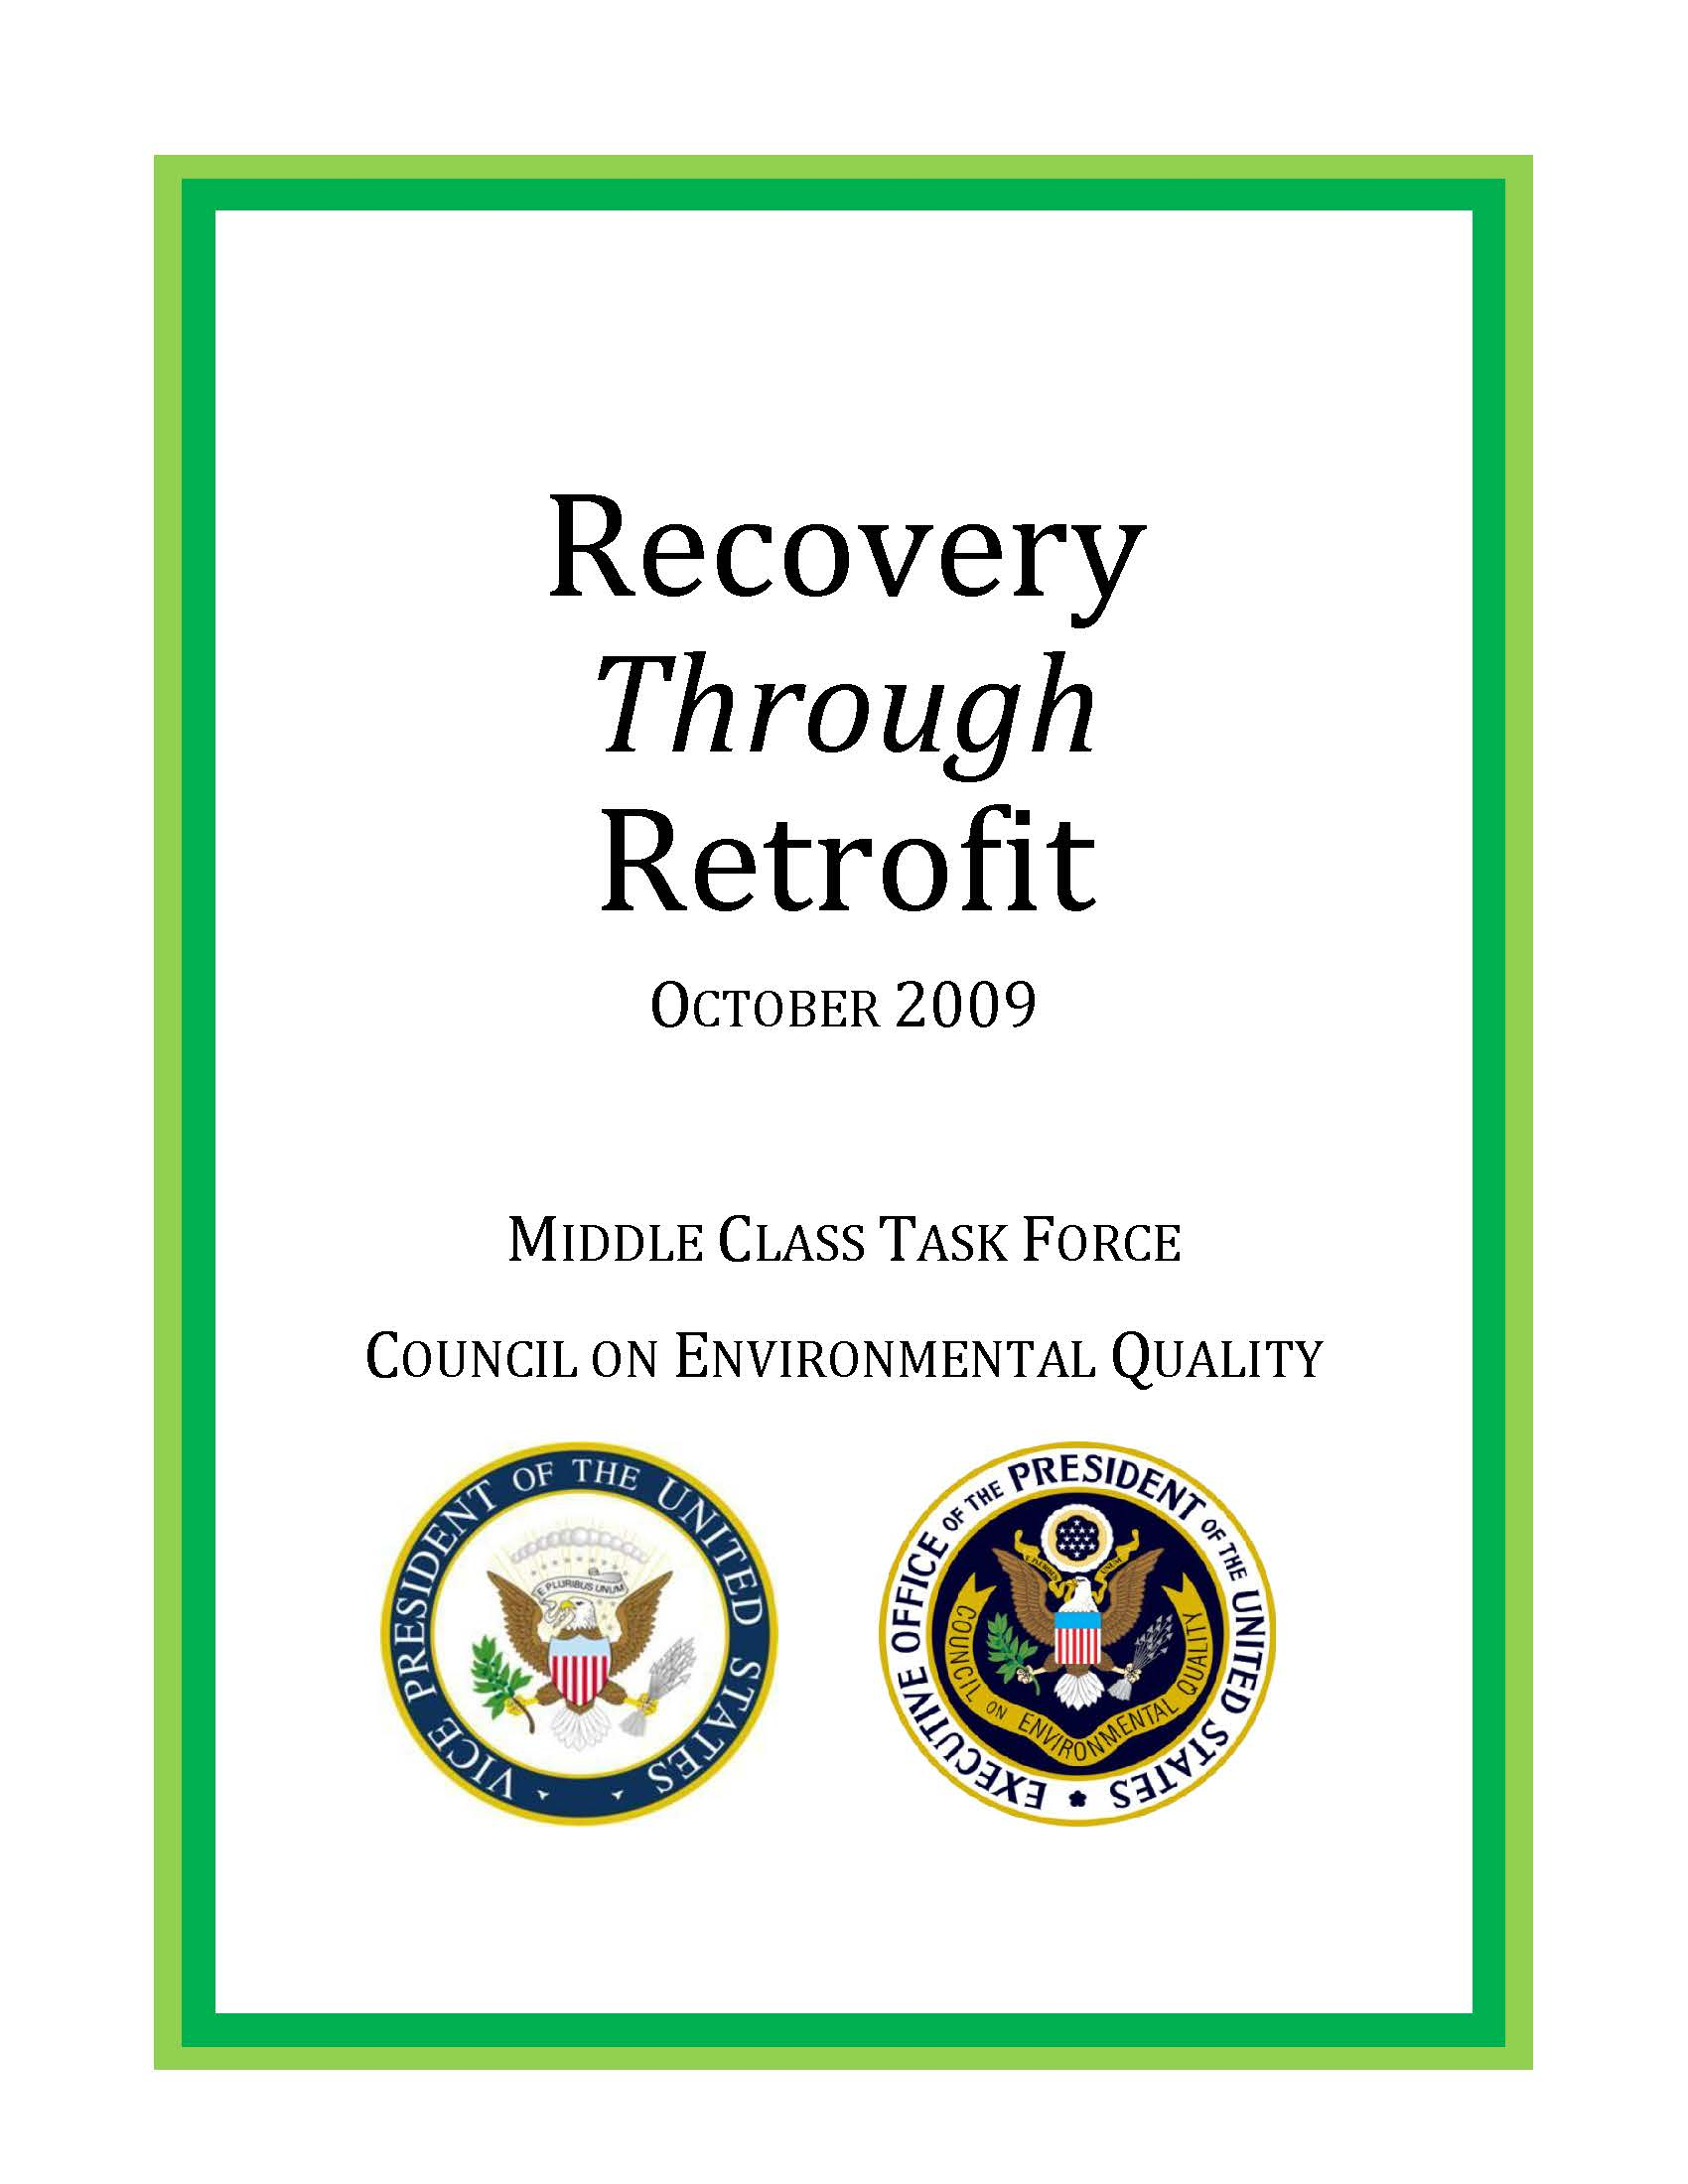 Recovery Through Retrofit